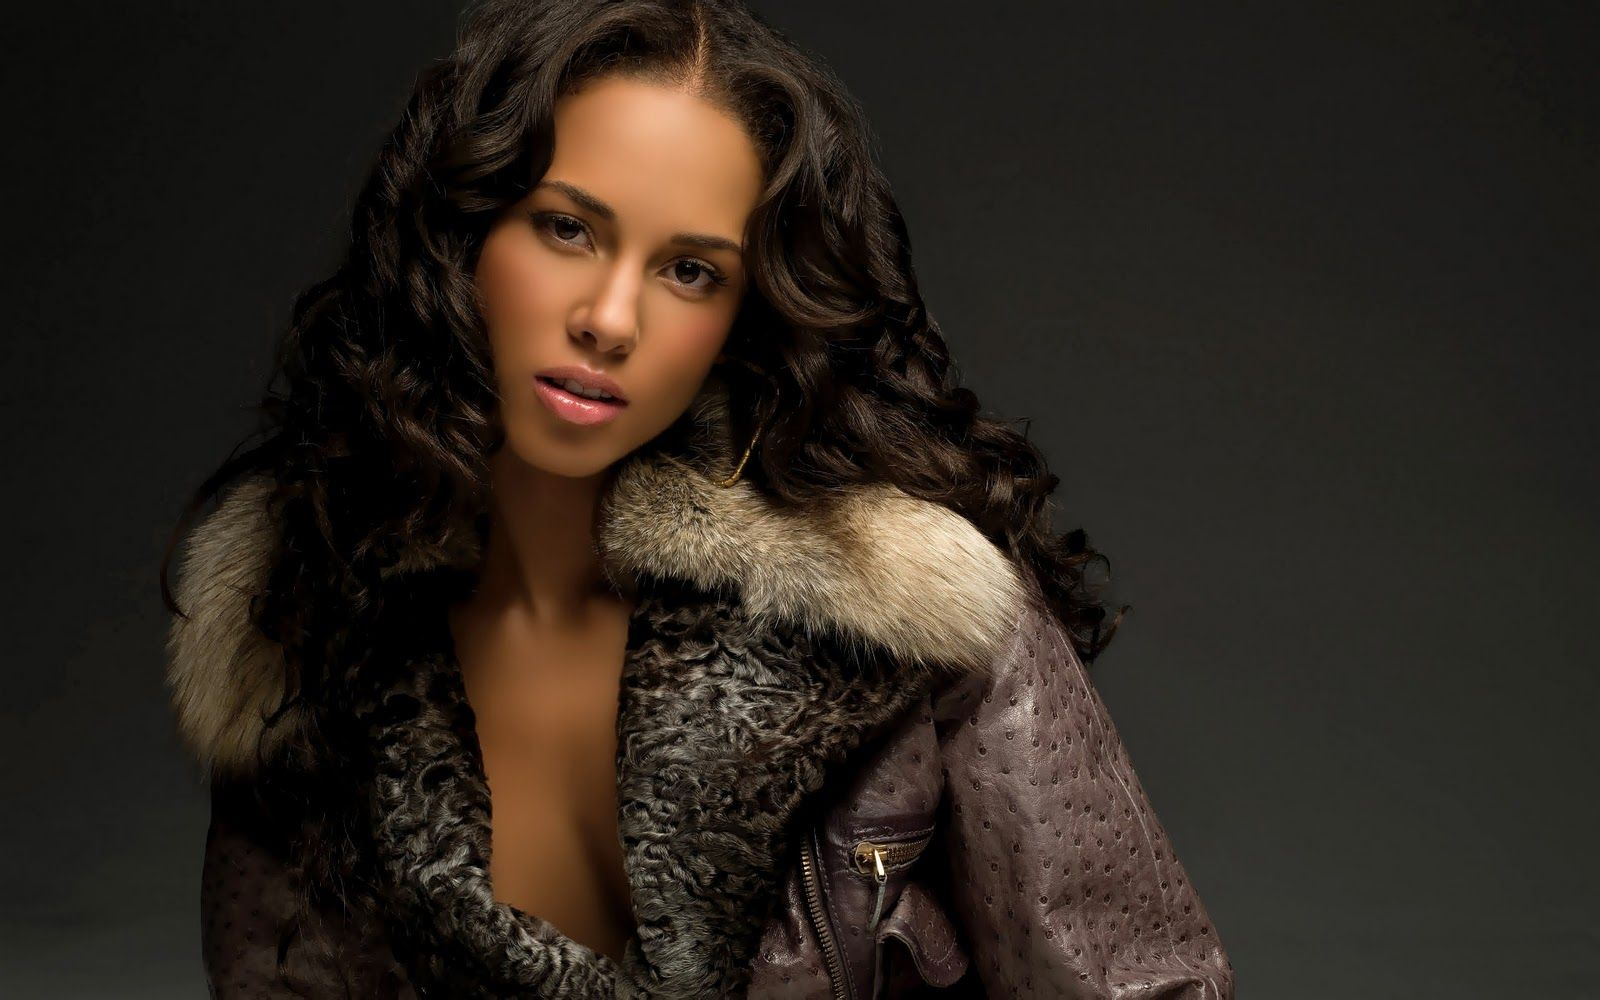 1600x1000 Alicia Keys Wallpaper - Best HD Desktop Wallpaper